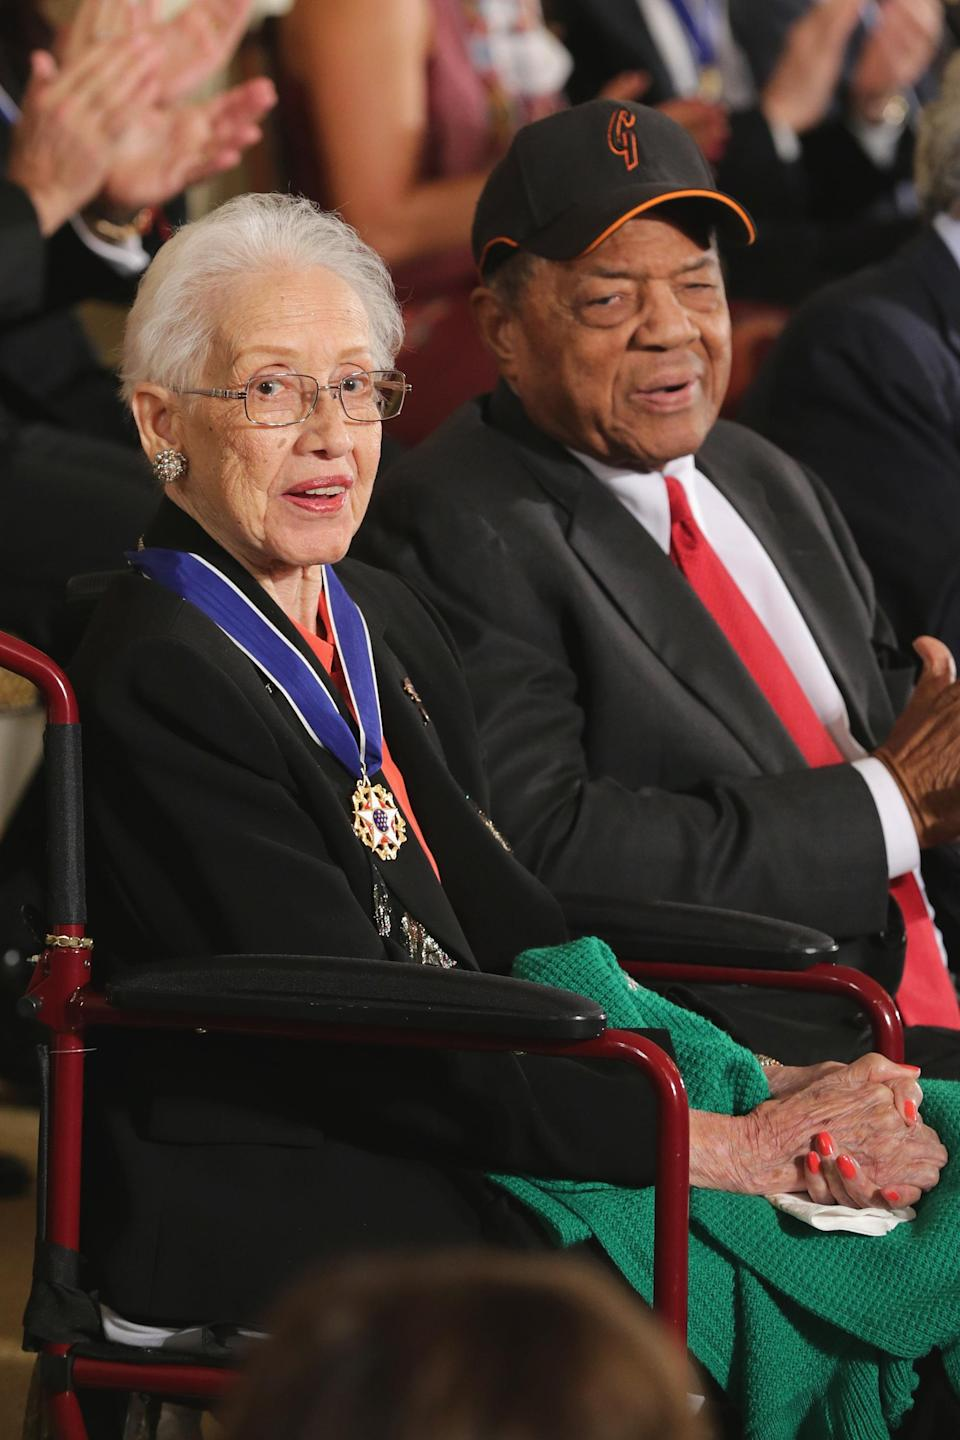 Pioneering NASA mathematician Katherine Johnson (L) and Baseball Hall of Famer Willie Mays are presented with the Presidential Medal of Freedom during a ceremony at the White House Washington, DC, 2015. (Photo: Chip Somodevilla/Getty Images)